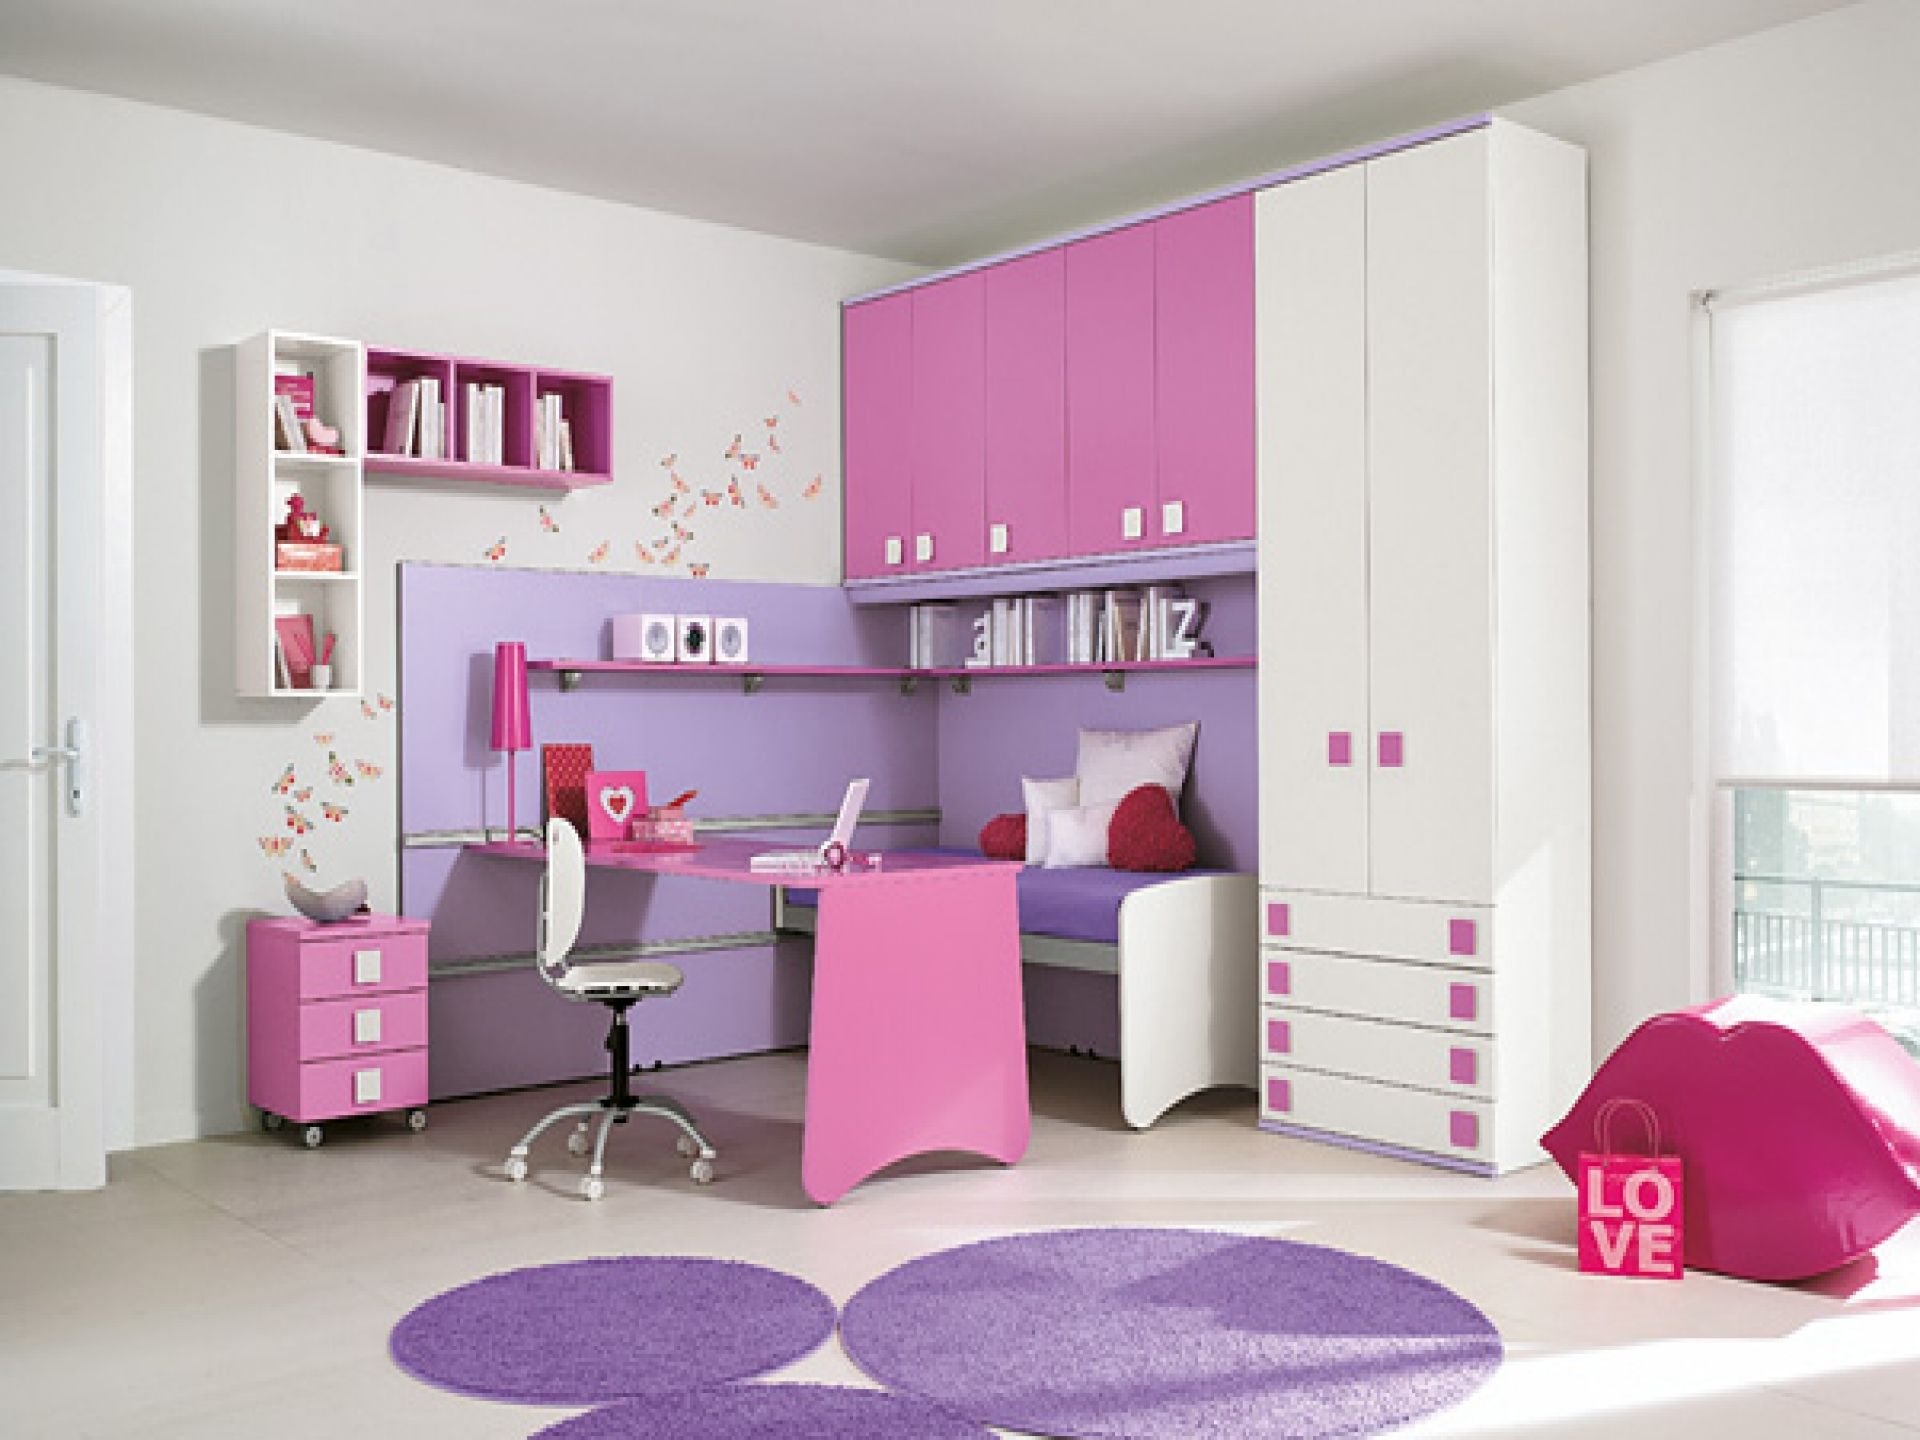 Image result for pink white purple office room | Bedroom ...